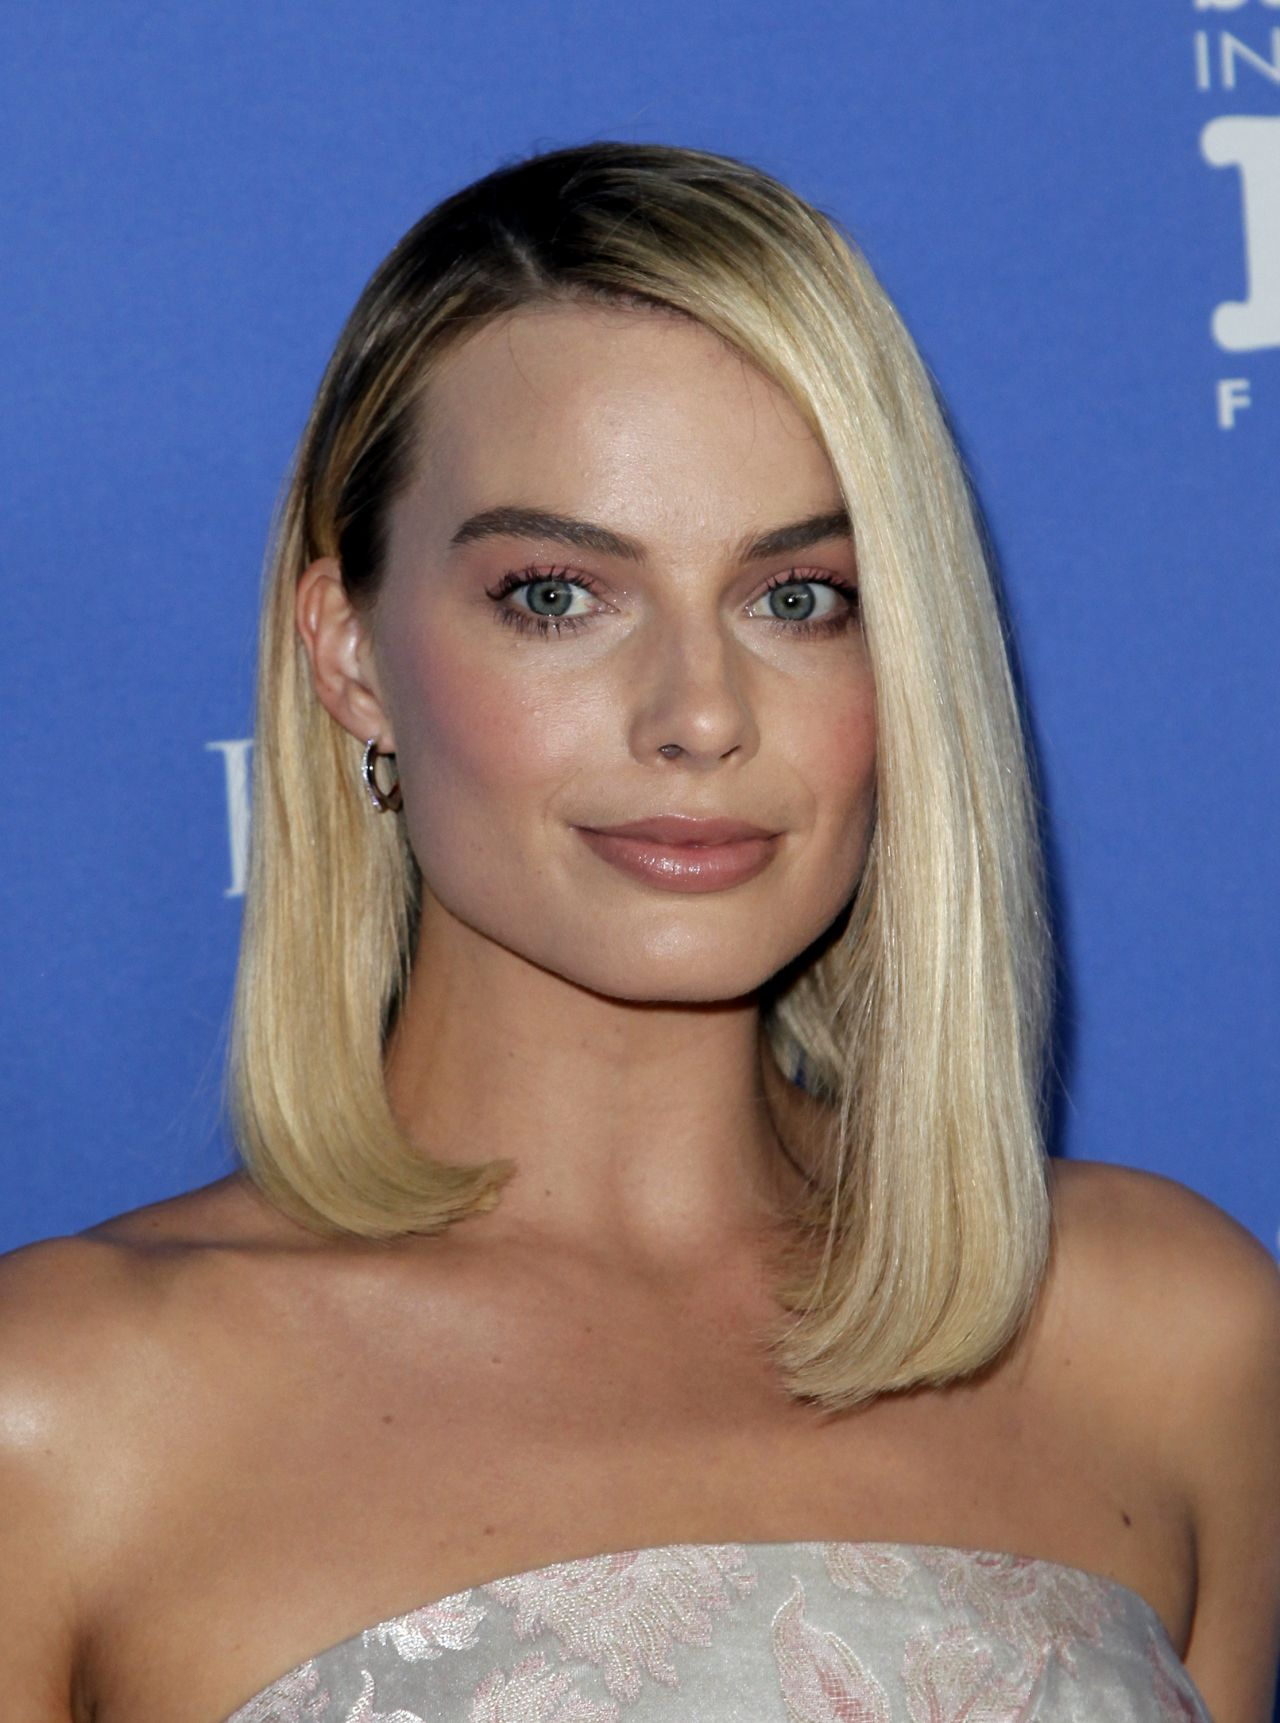 http://celebmafia.com/wp-content/uploads/2018/02/margot-robbie-receives-the-outstanding-performers-of-the-year-award-at-sbiff-4.jpg